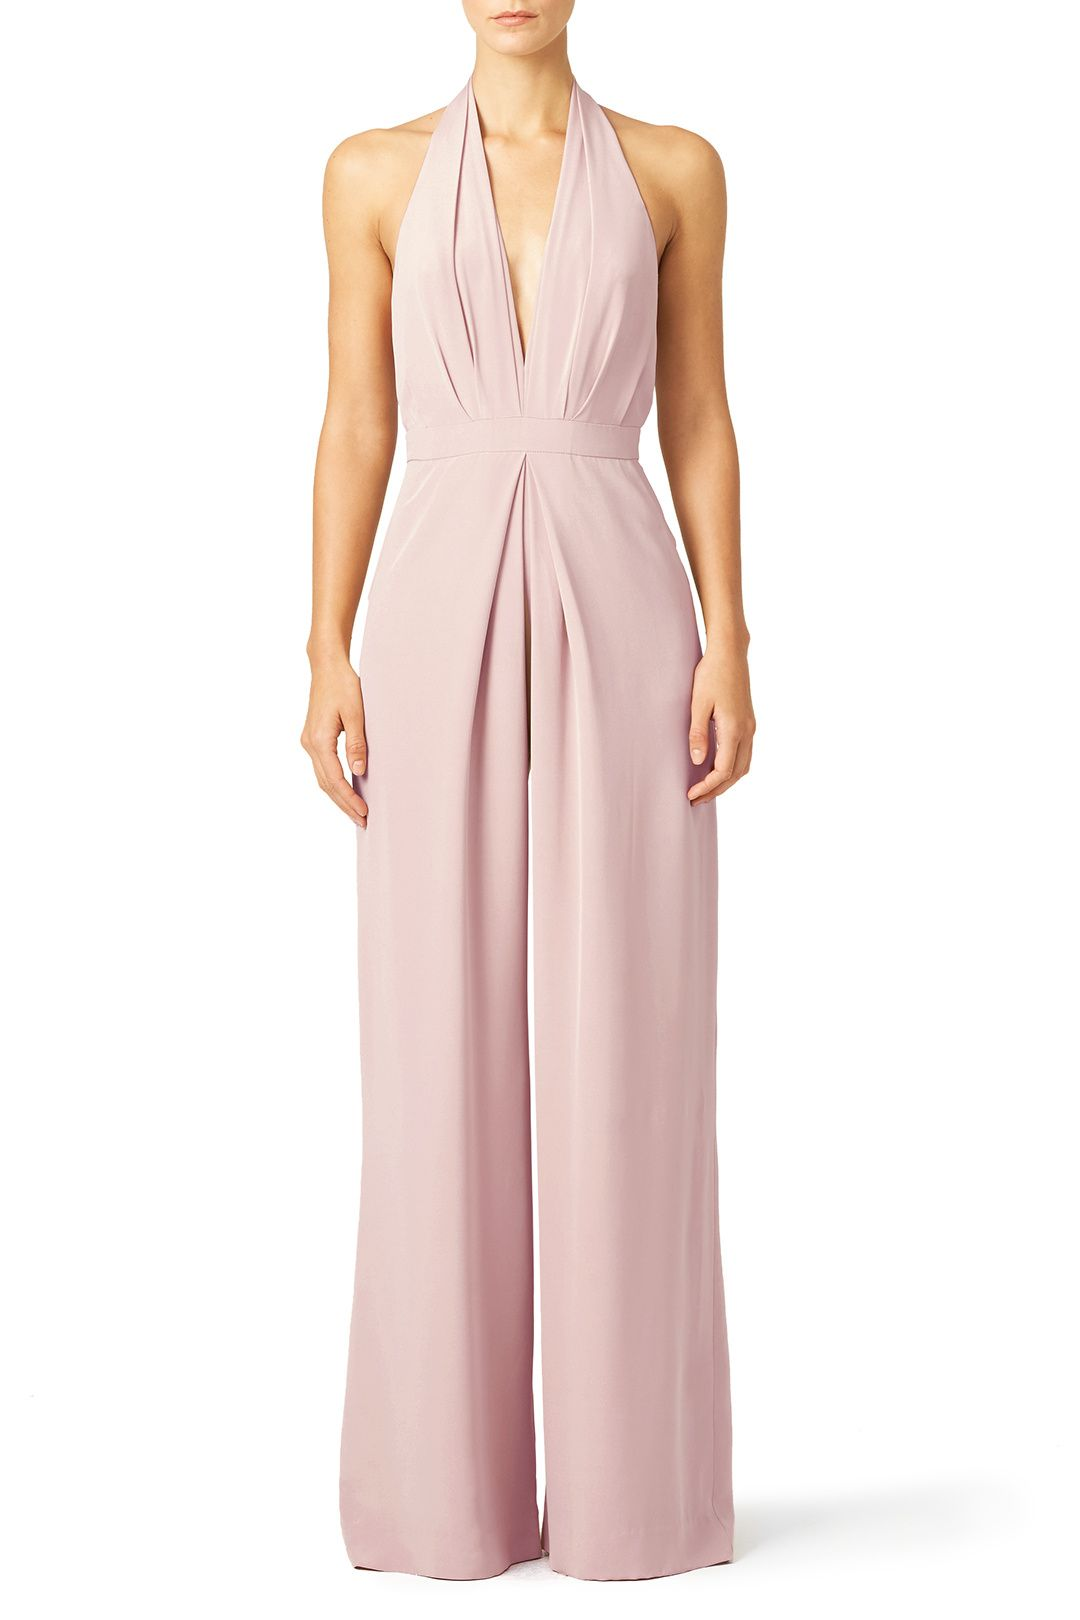 5957c15c117 Crisp pleating and a plunging neckline make this Jill Jill Stuart jumpsuit  both tailored and alluring. We love this look for brides.